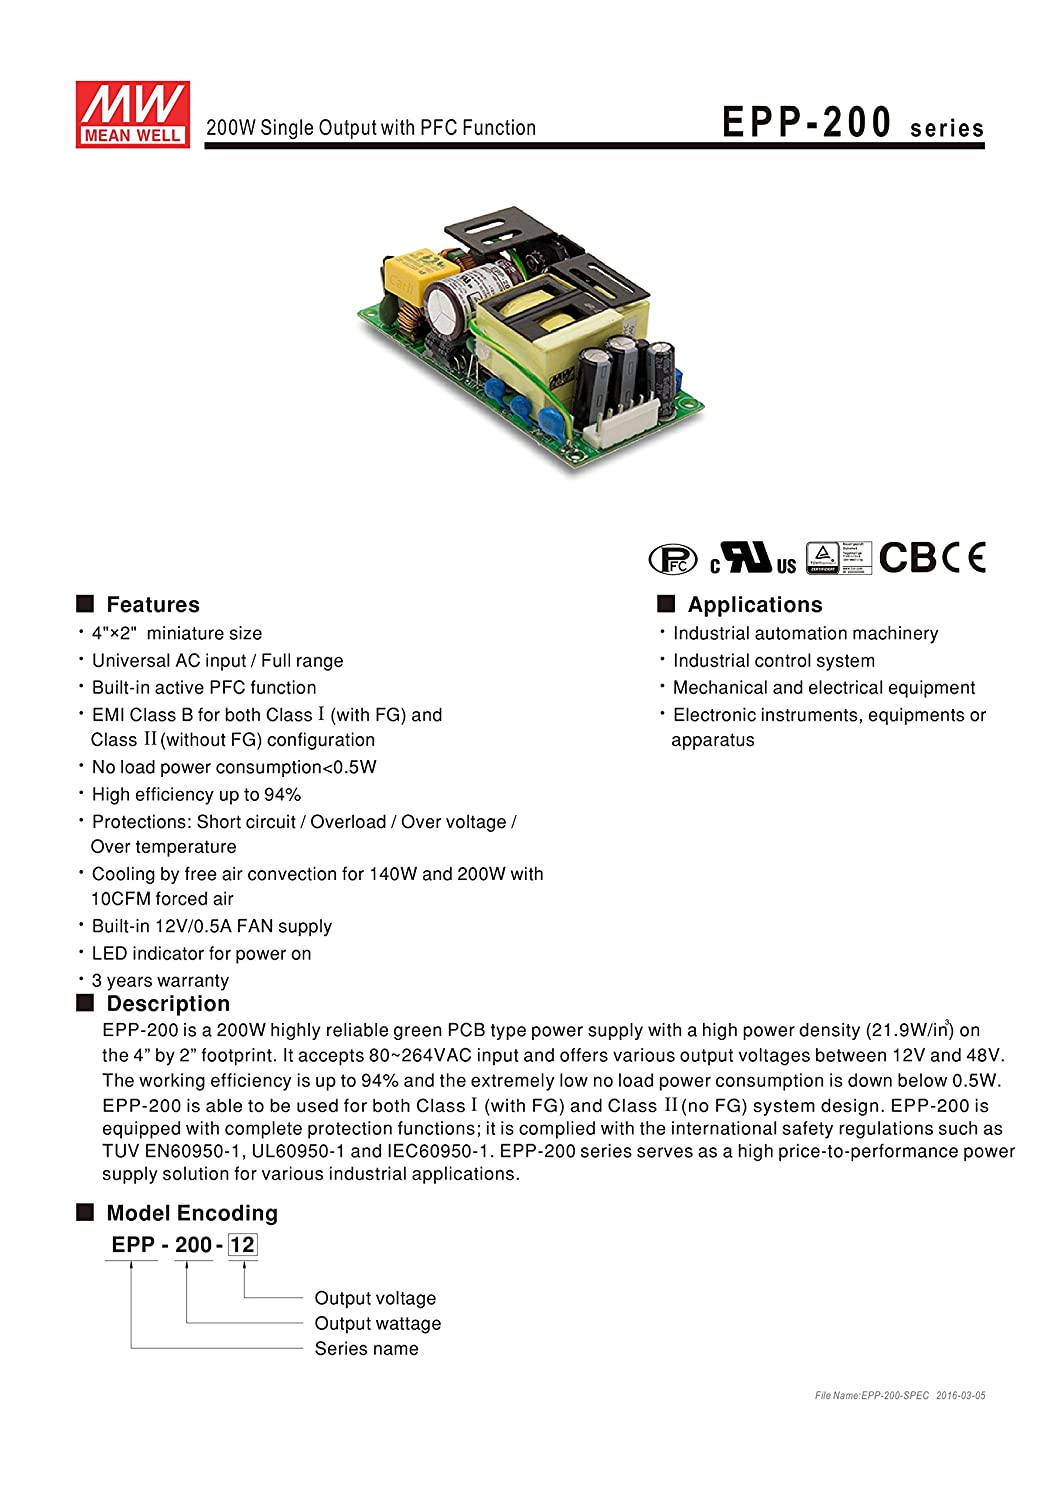 Mean Well Hlg-40h-12b Wiring Diagram Mw Mean Well Wiring Diagram on